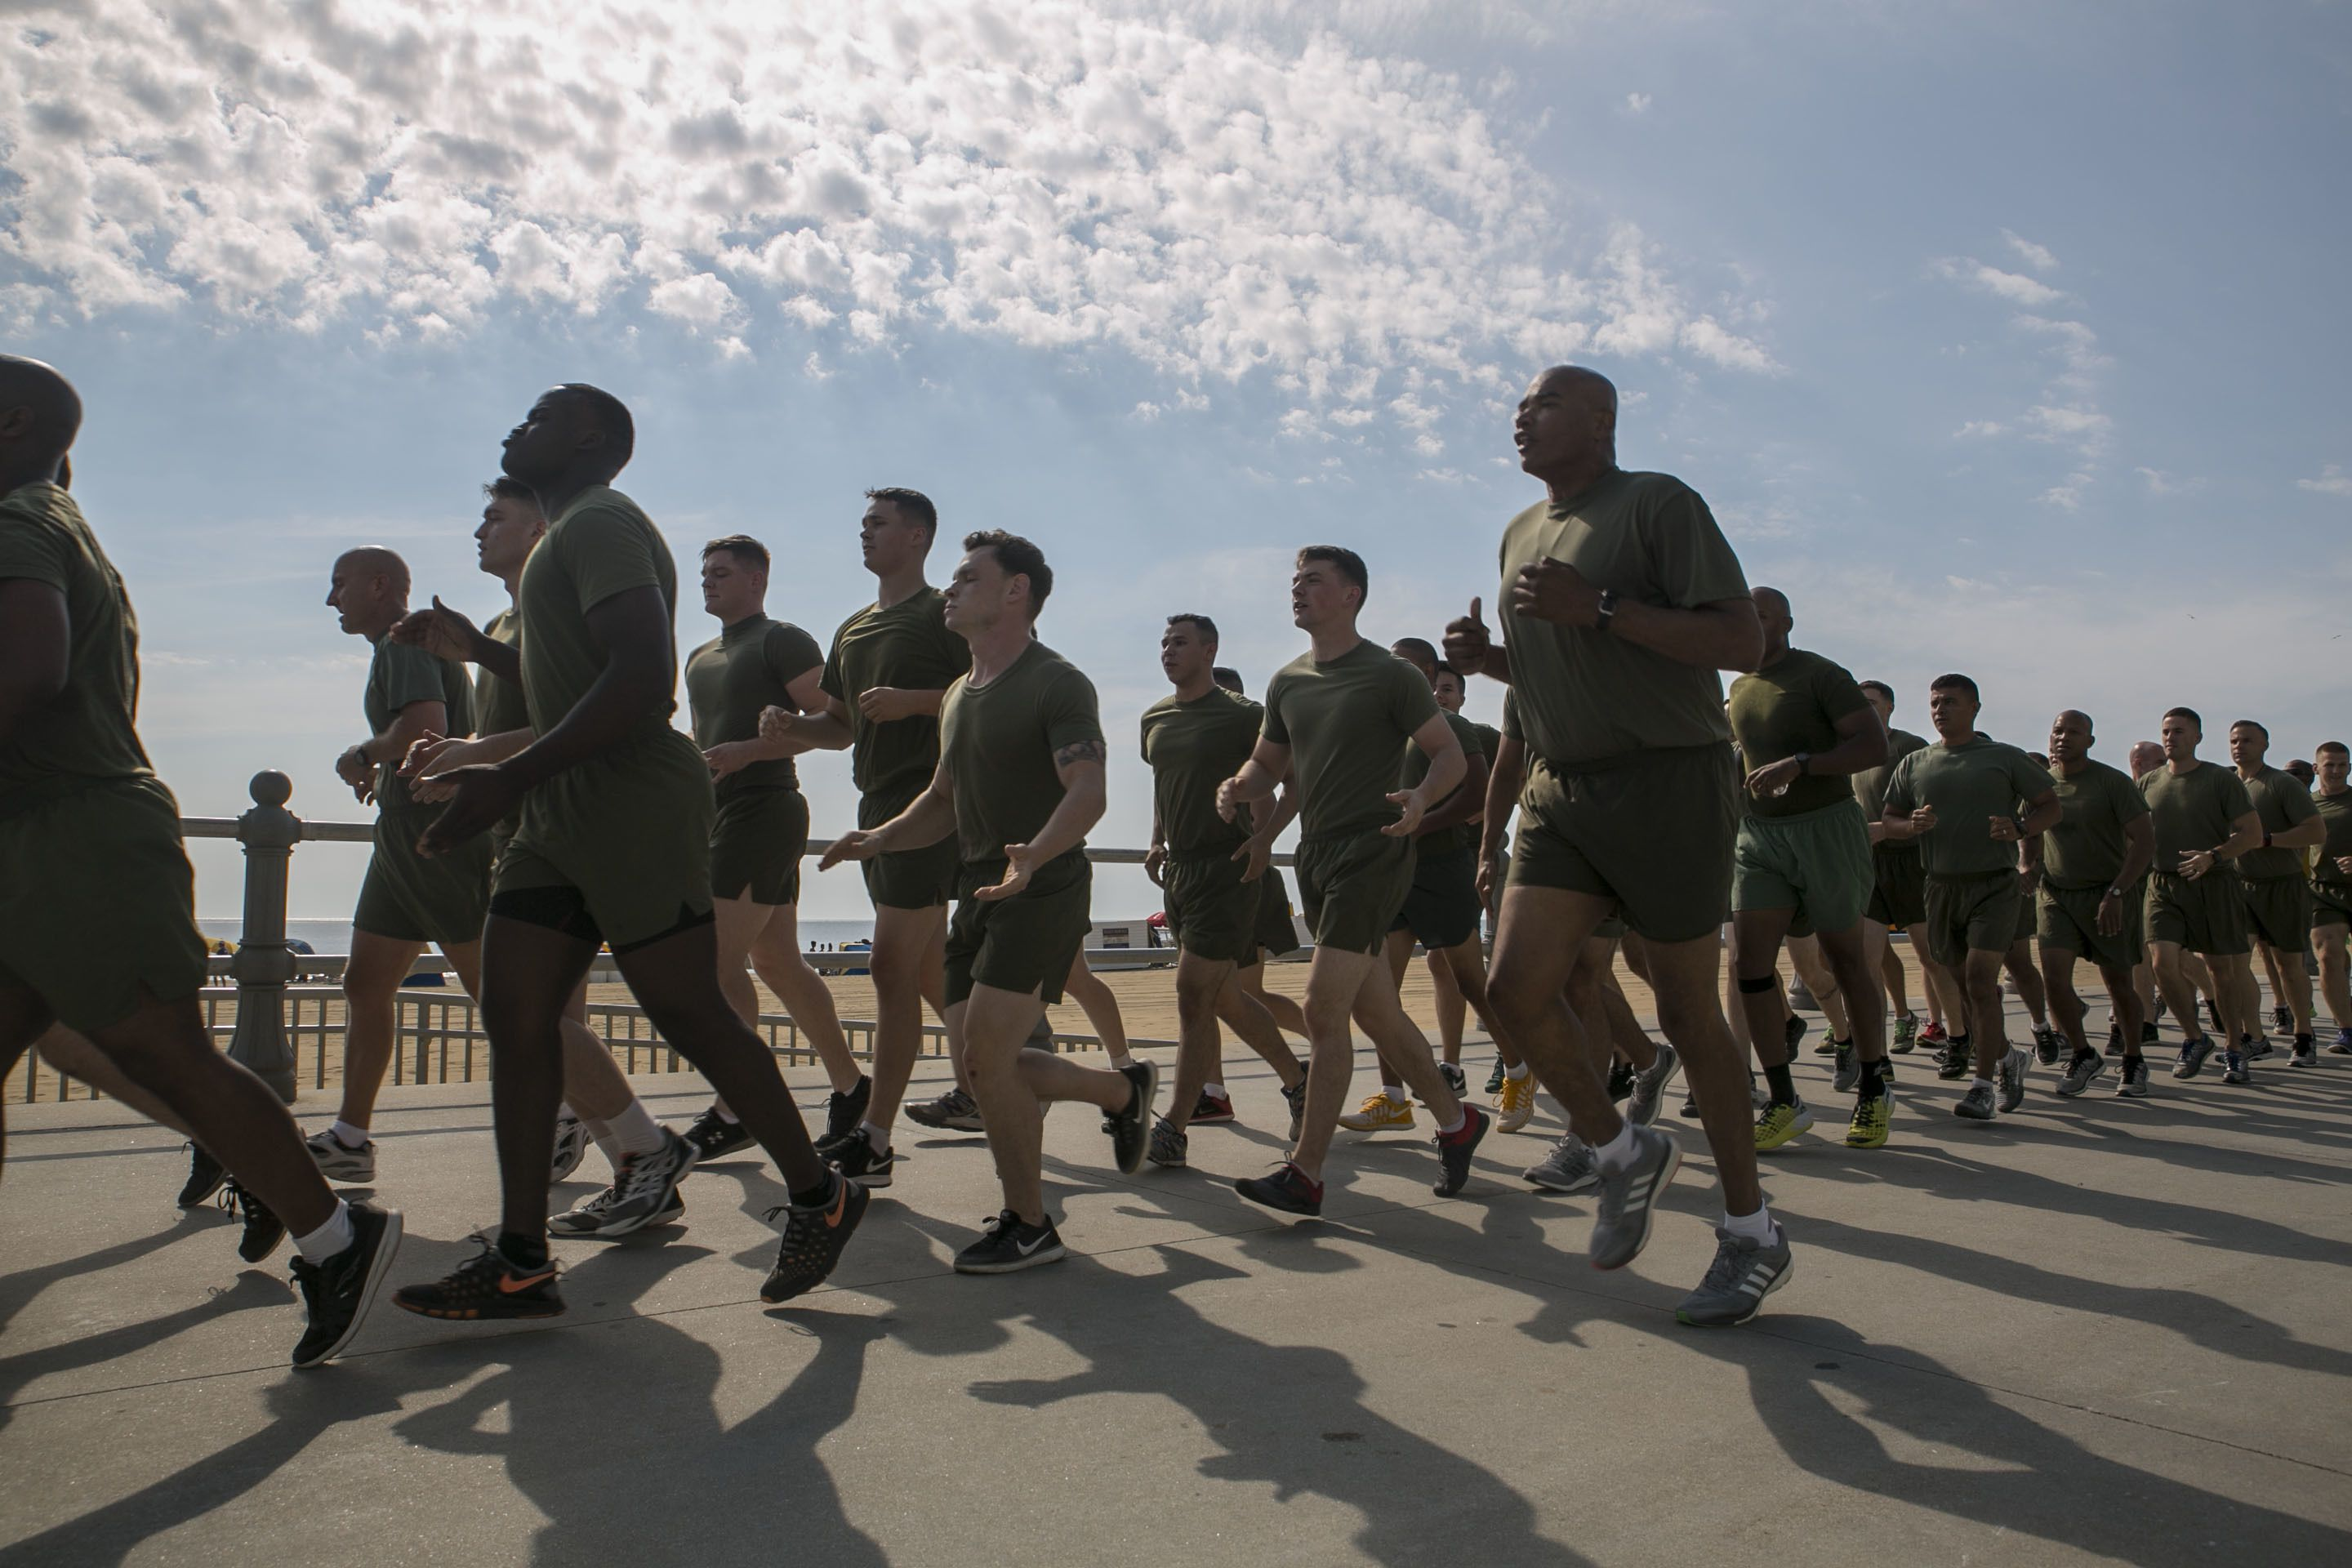 Listen to this comedian's hilarious take on military running cadence